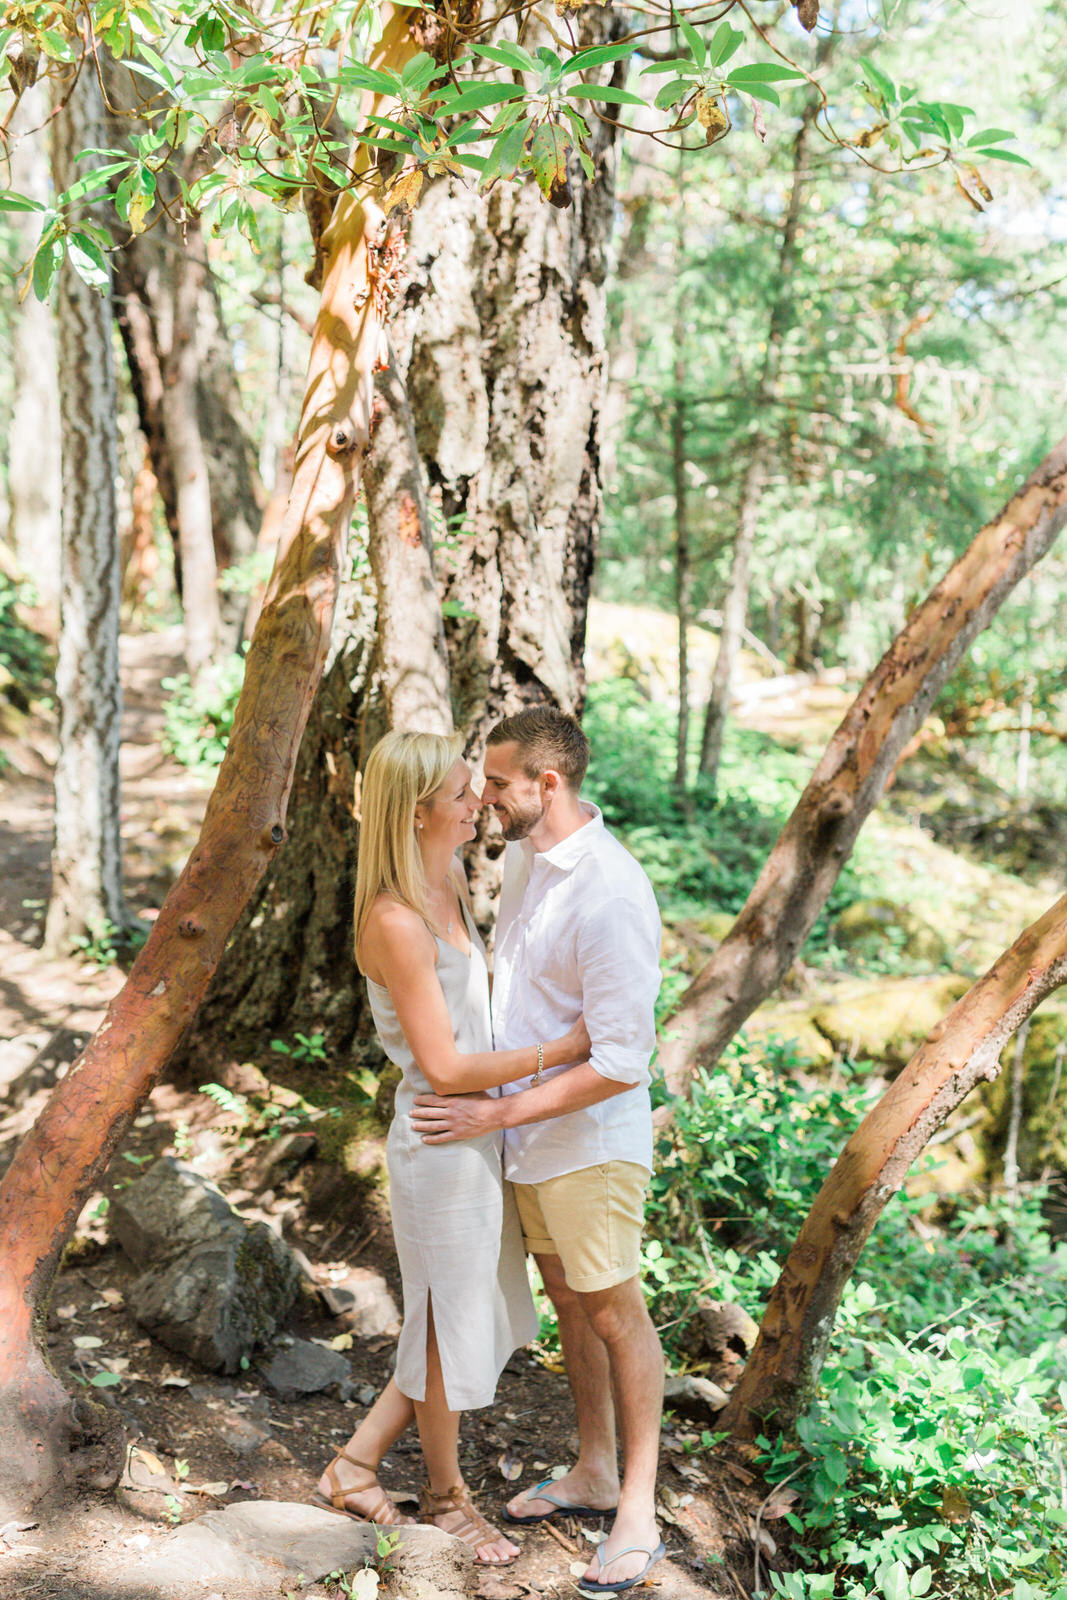 Sunshine Coast Engagement Photos, Smuggler Cove engagement, Vancouver wedding photographer, sunshine coast wedding photographer, jennifer picard